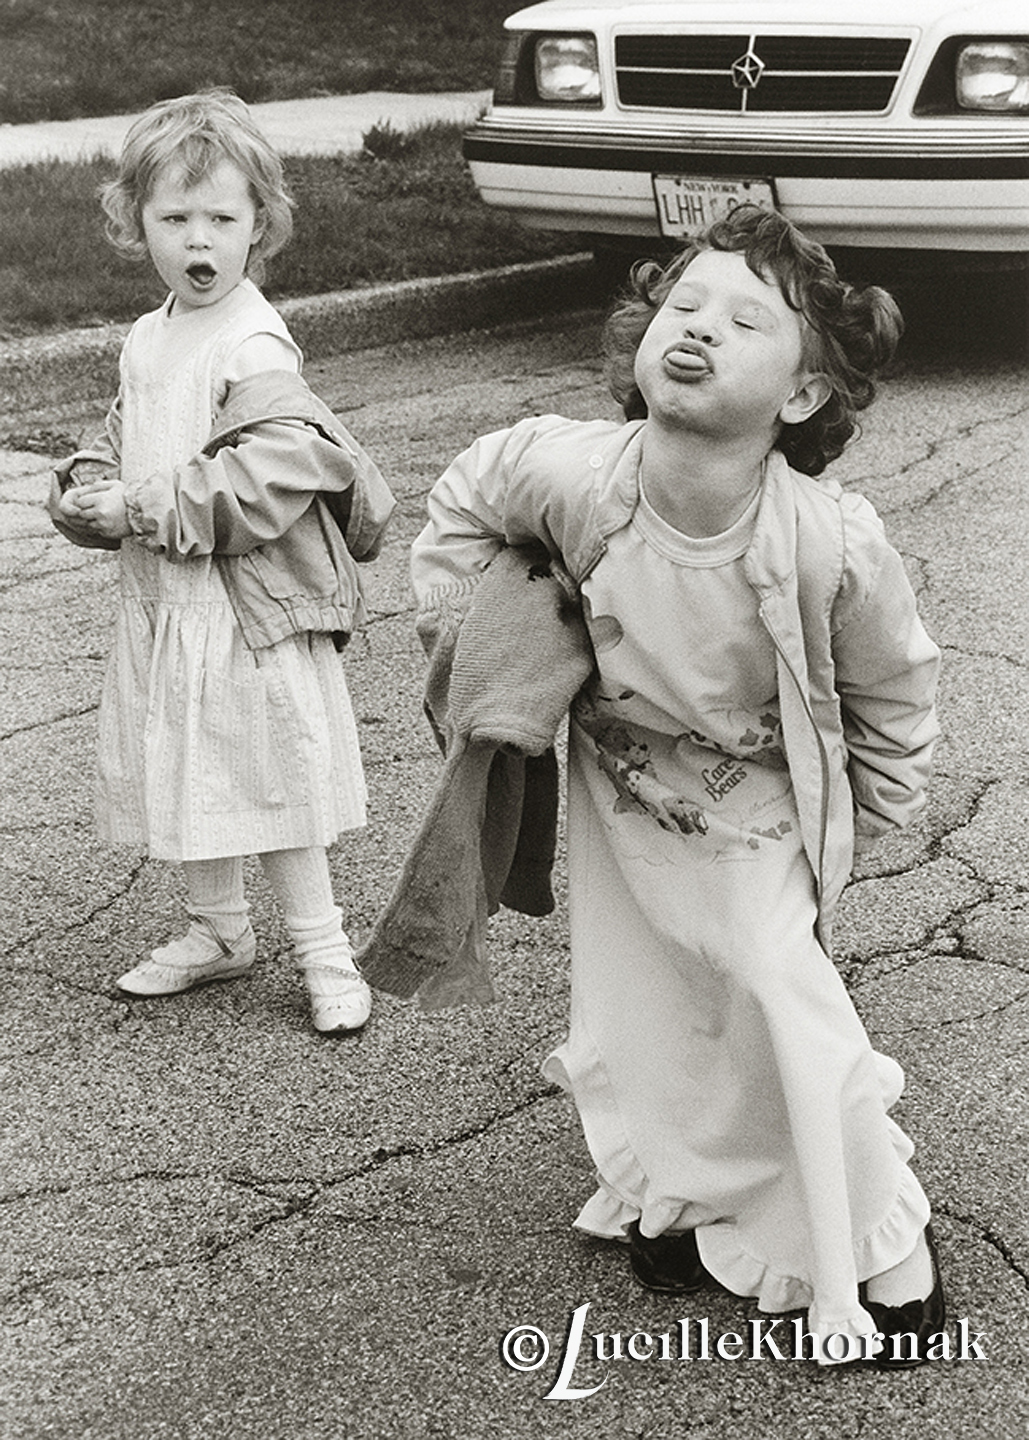 From my personal collection of children I photographed.